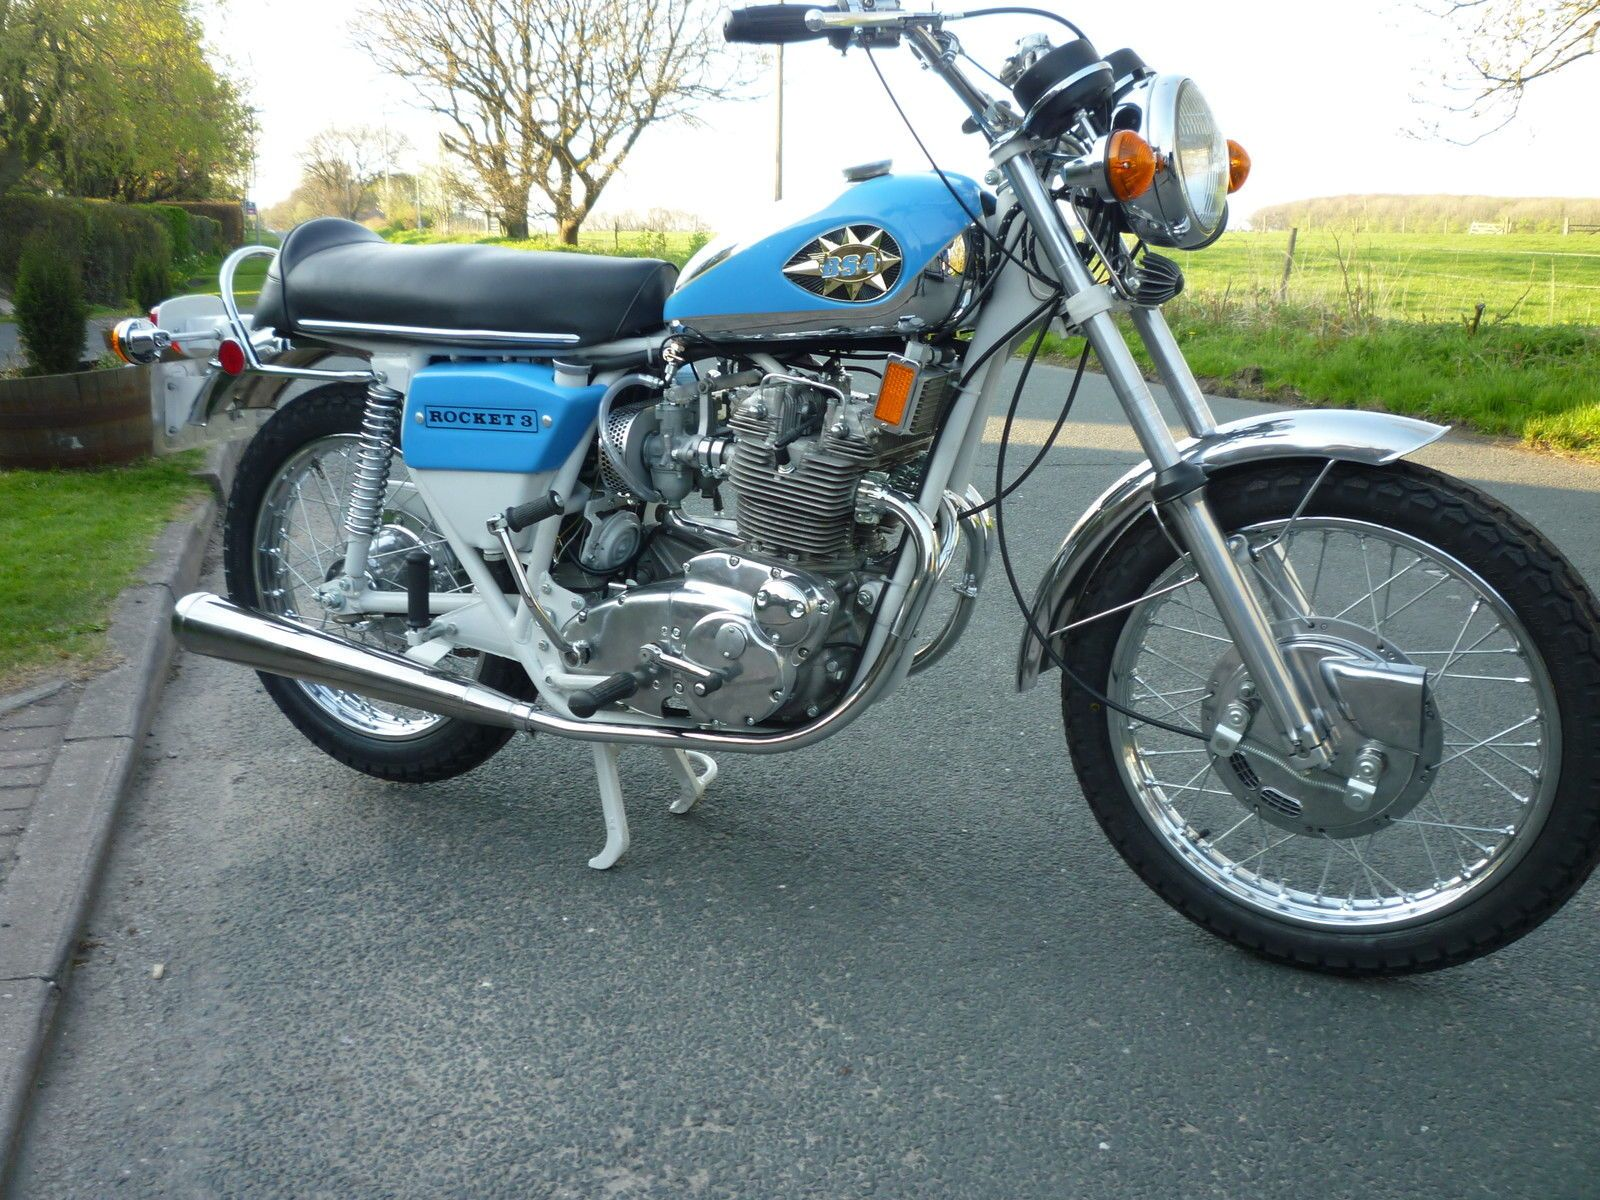 Matchless g 11 csr for sale 1958 on car and classic uk c544589 - Bsa Starfire Google Search Bsa Norton Matchless Ajs Pinterest British Motorcycles Bsa Motorcycle And Classic Bikes